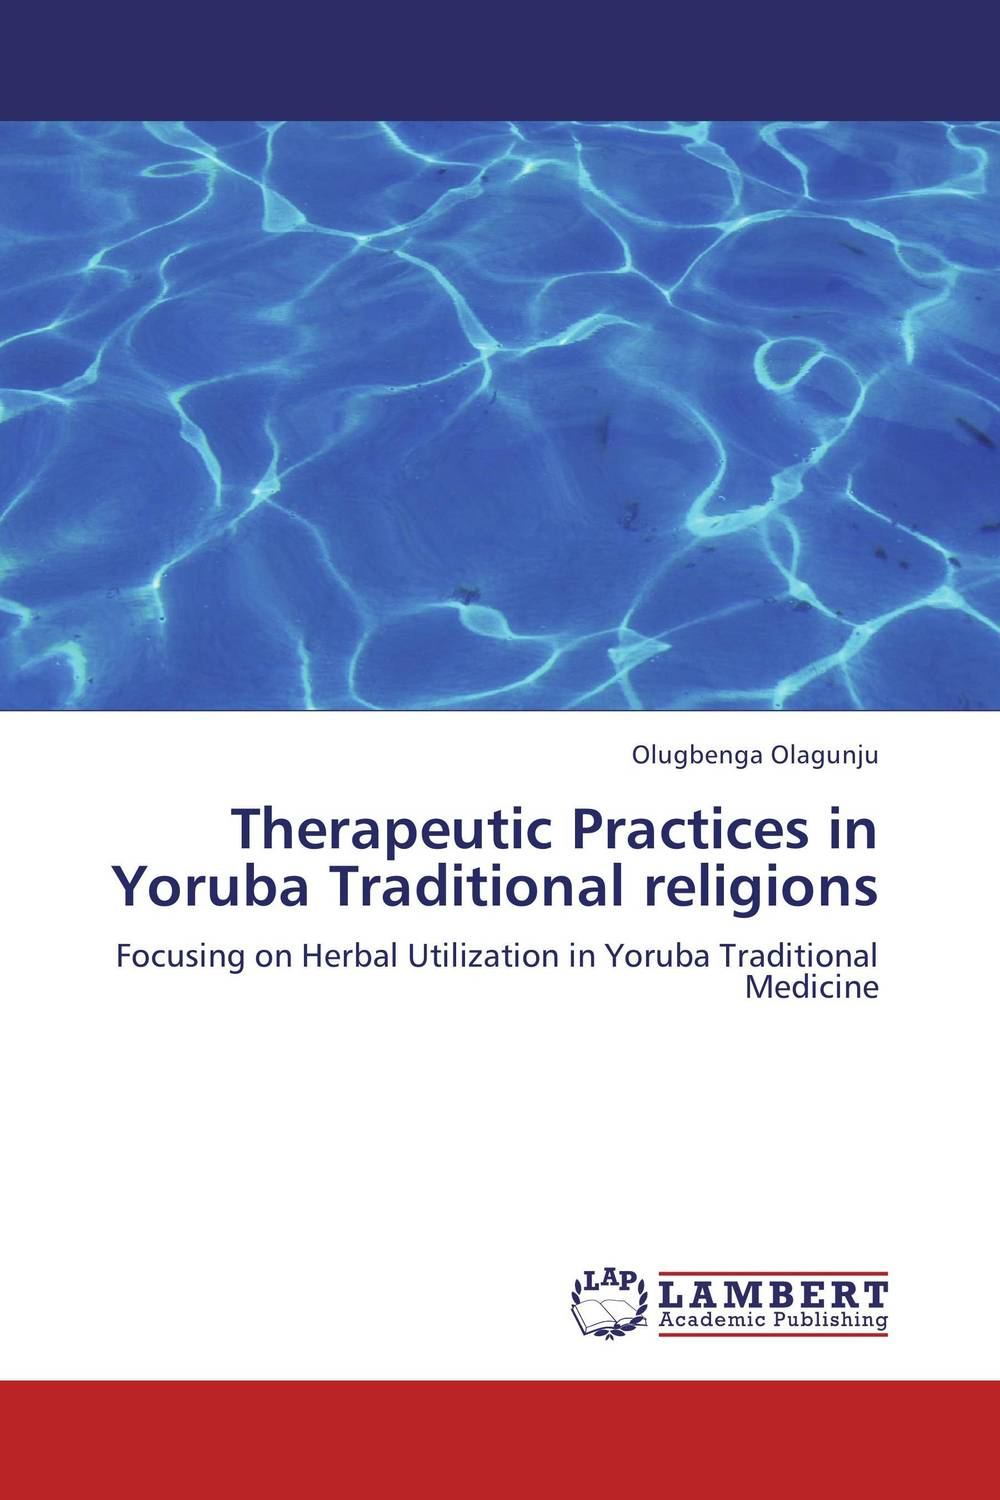 Therapeutic Practices in Yoruba Traditional religions therapeutic practices in yoruba traditional religions